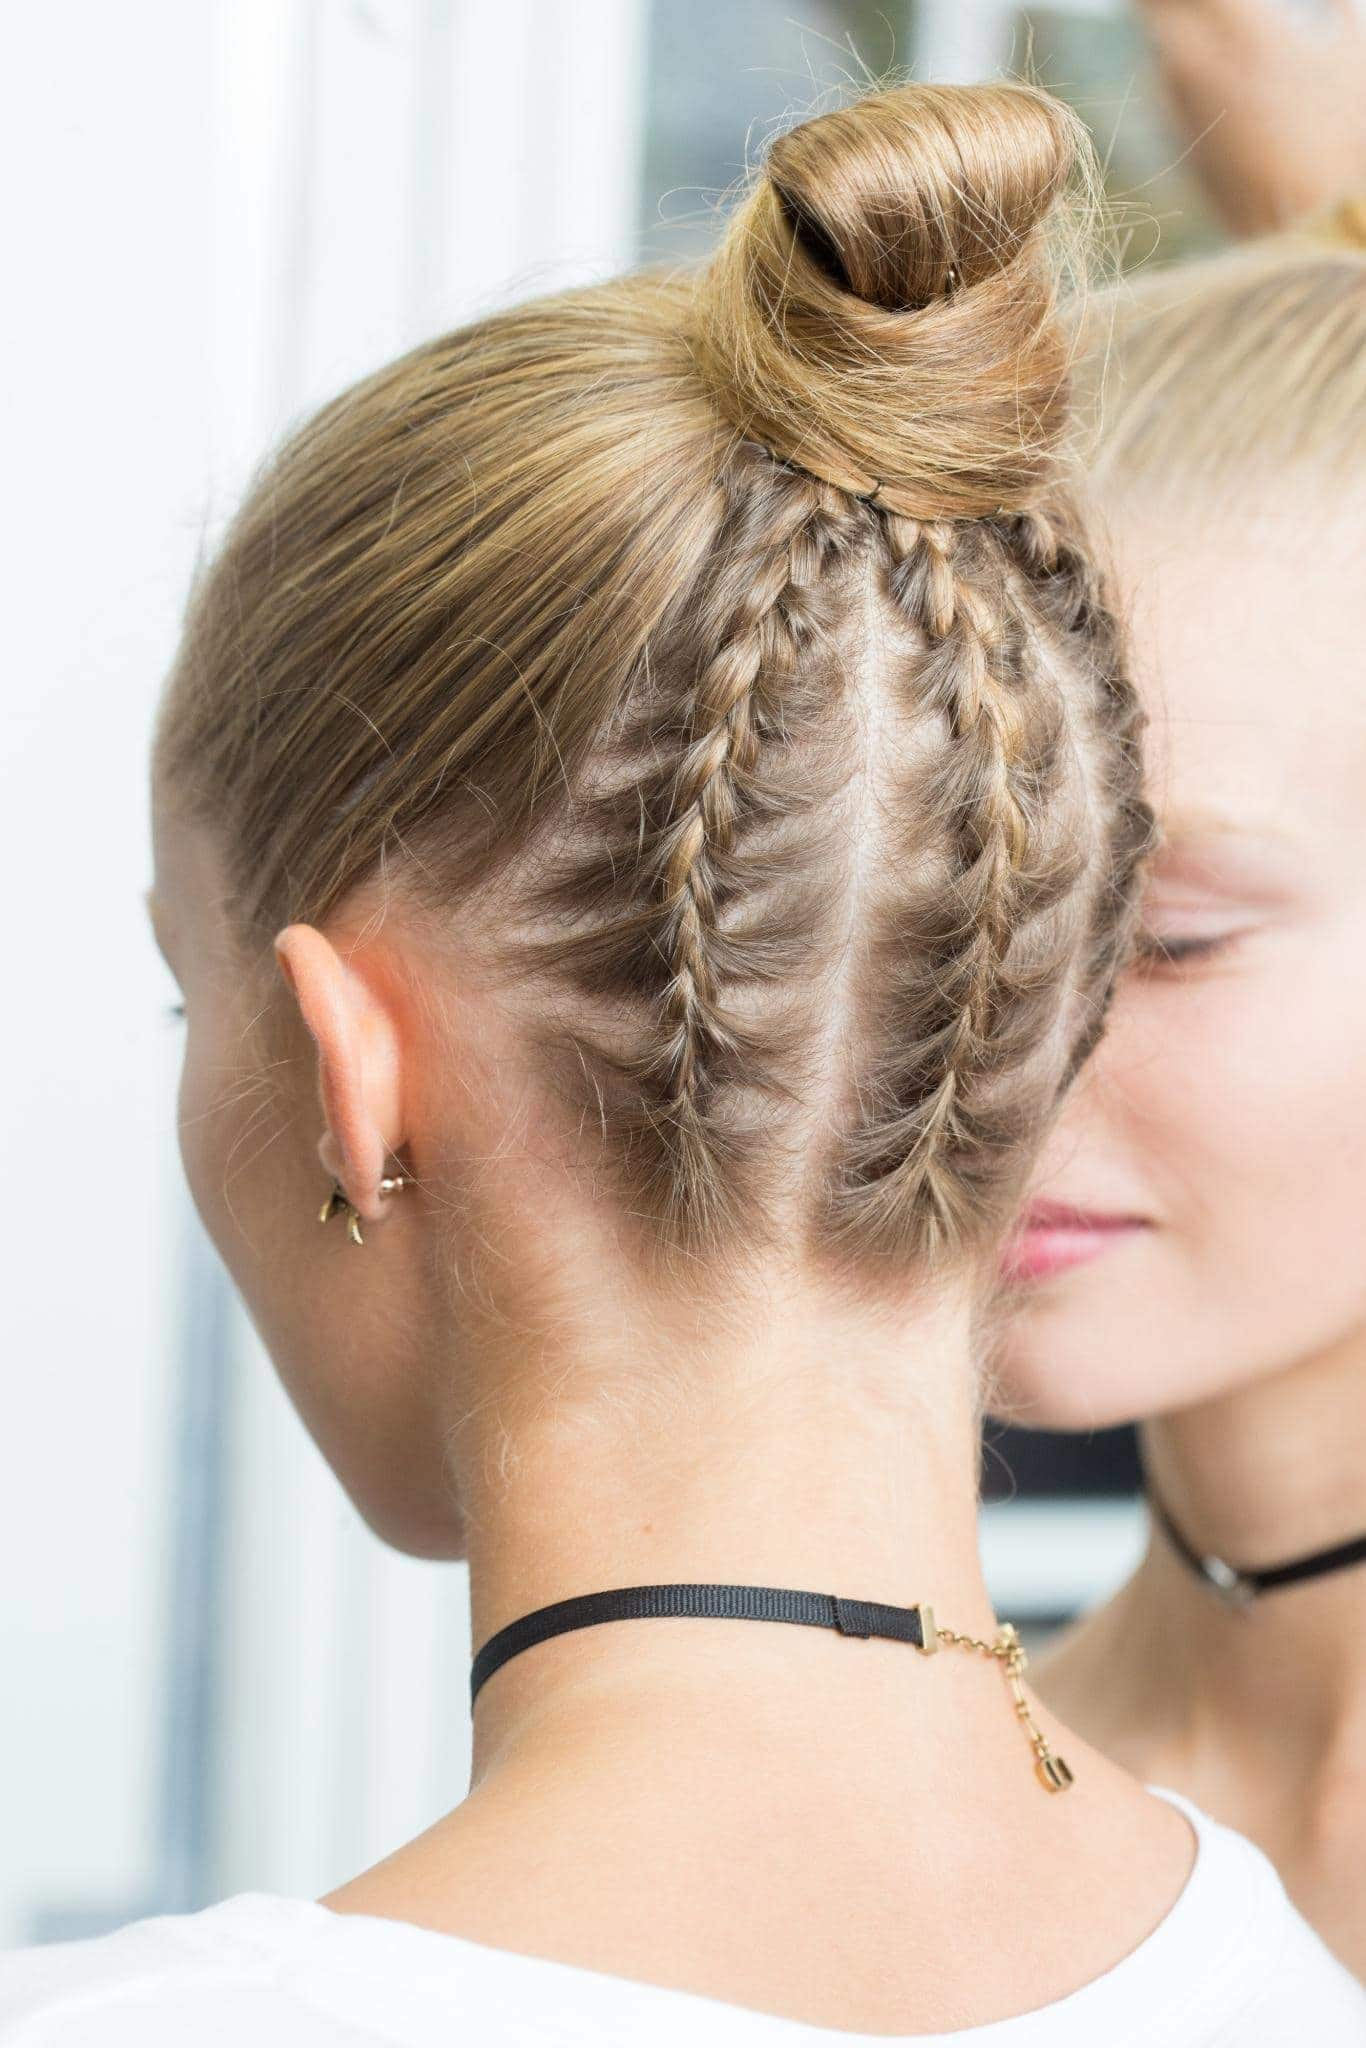 under braid hairstyles triple braid and top knot